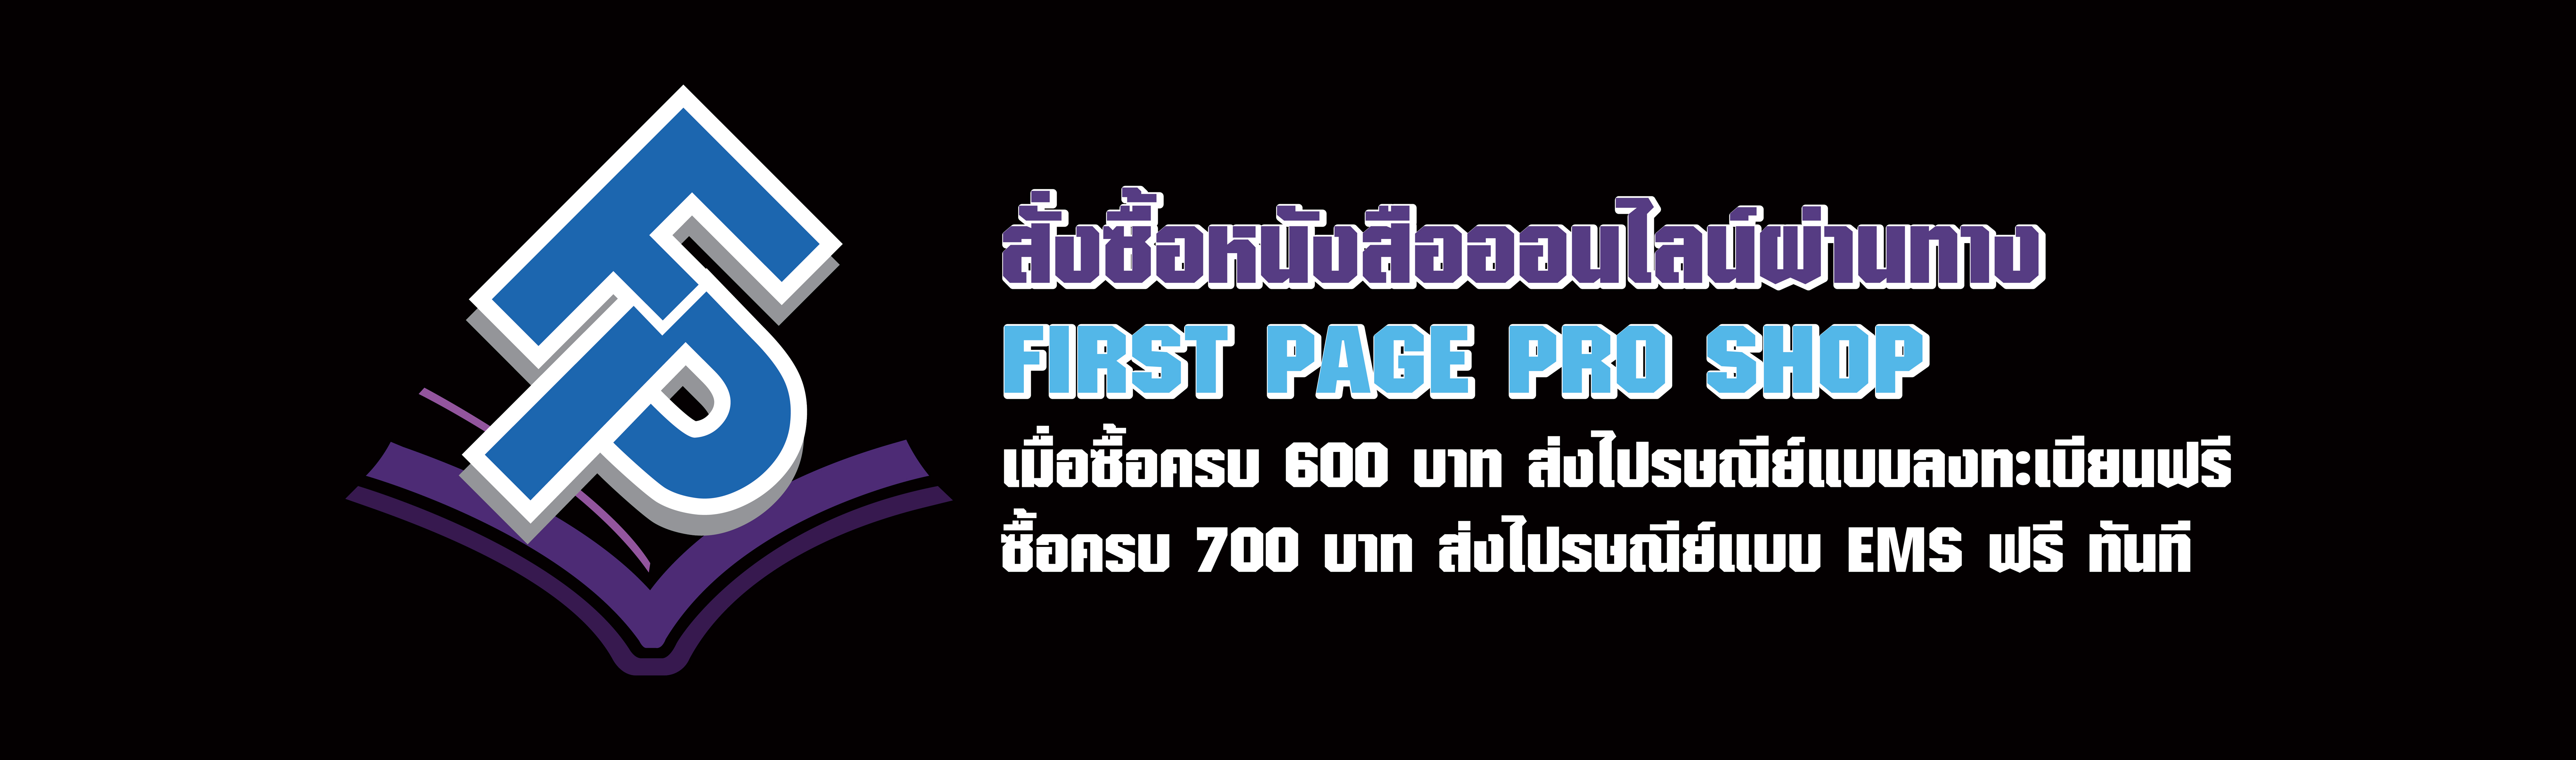 FirstPagePro